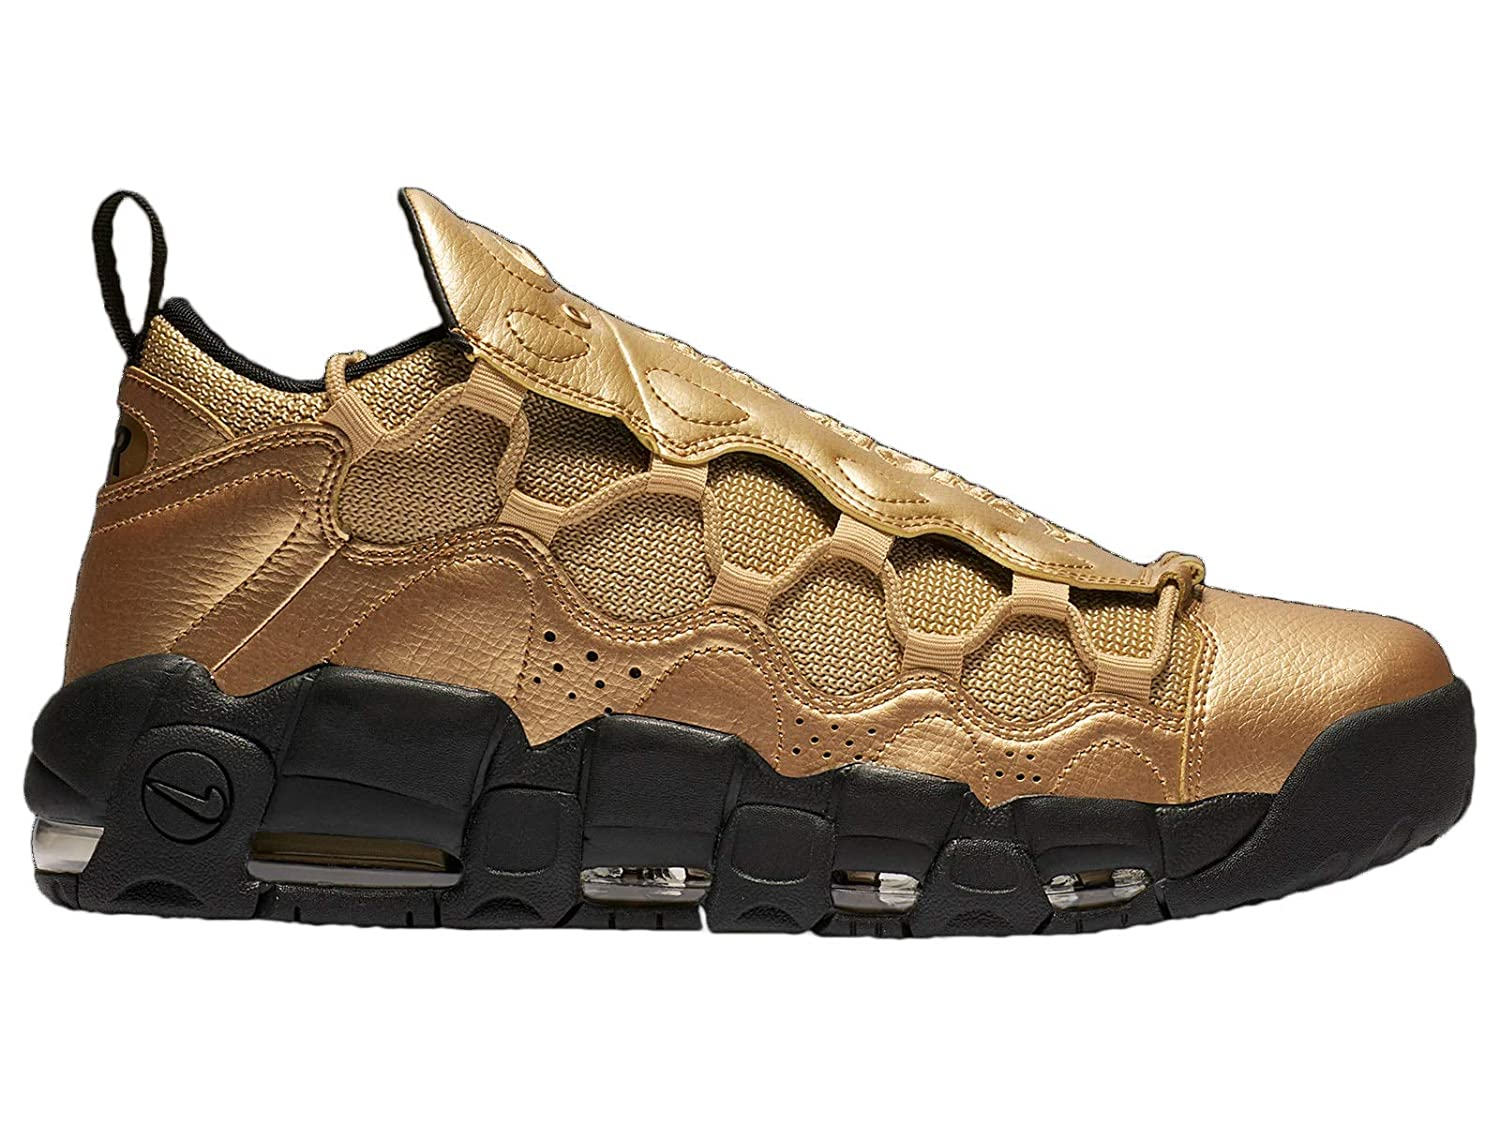 sneakers for cheap recognized brands special section Nike Men's Air More Money Leather Cross-Trainers Shoes